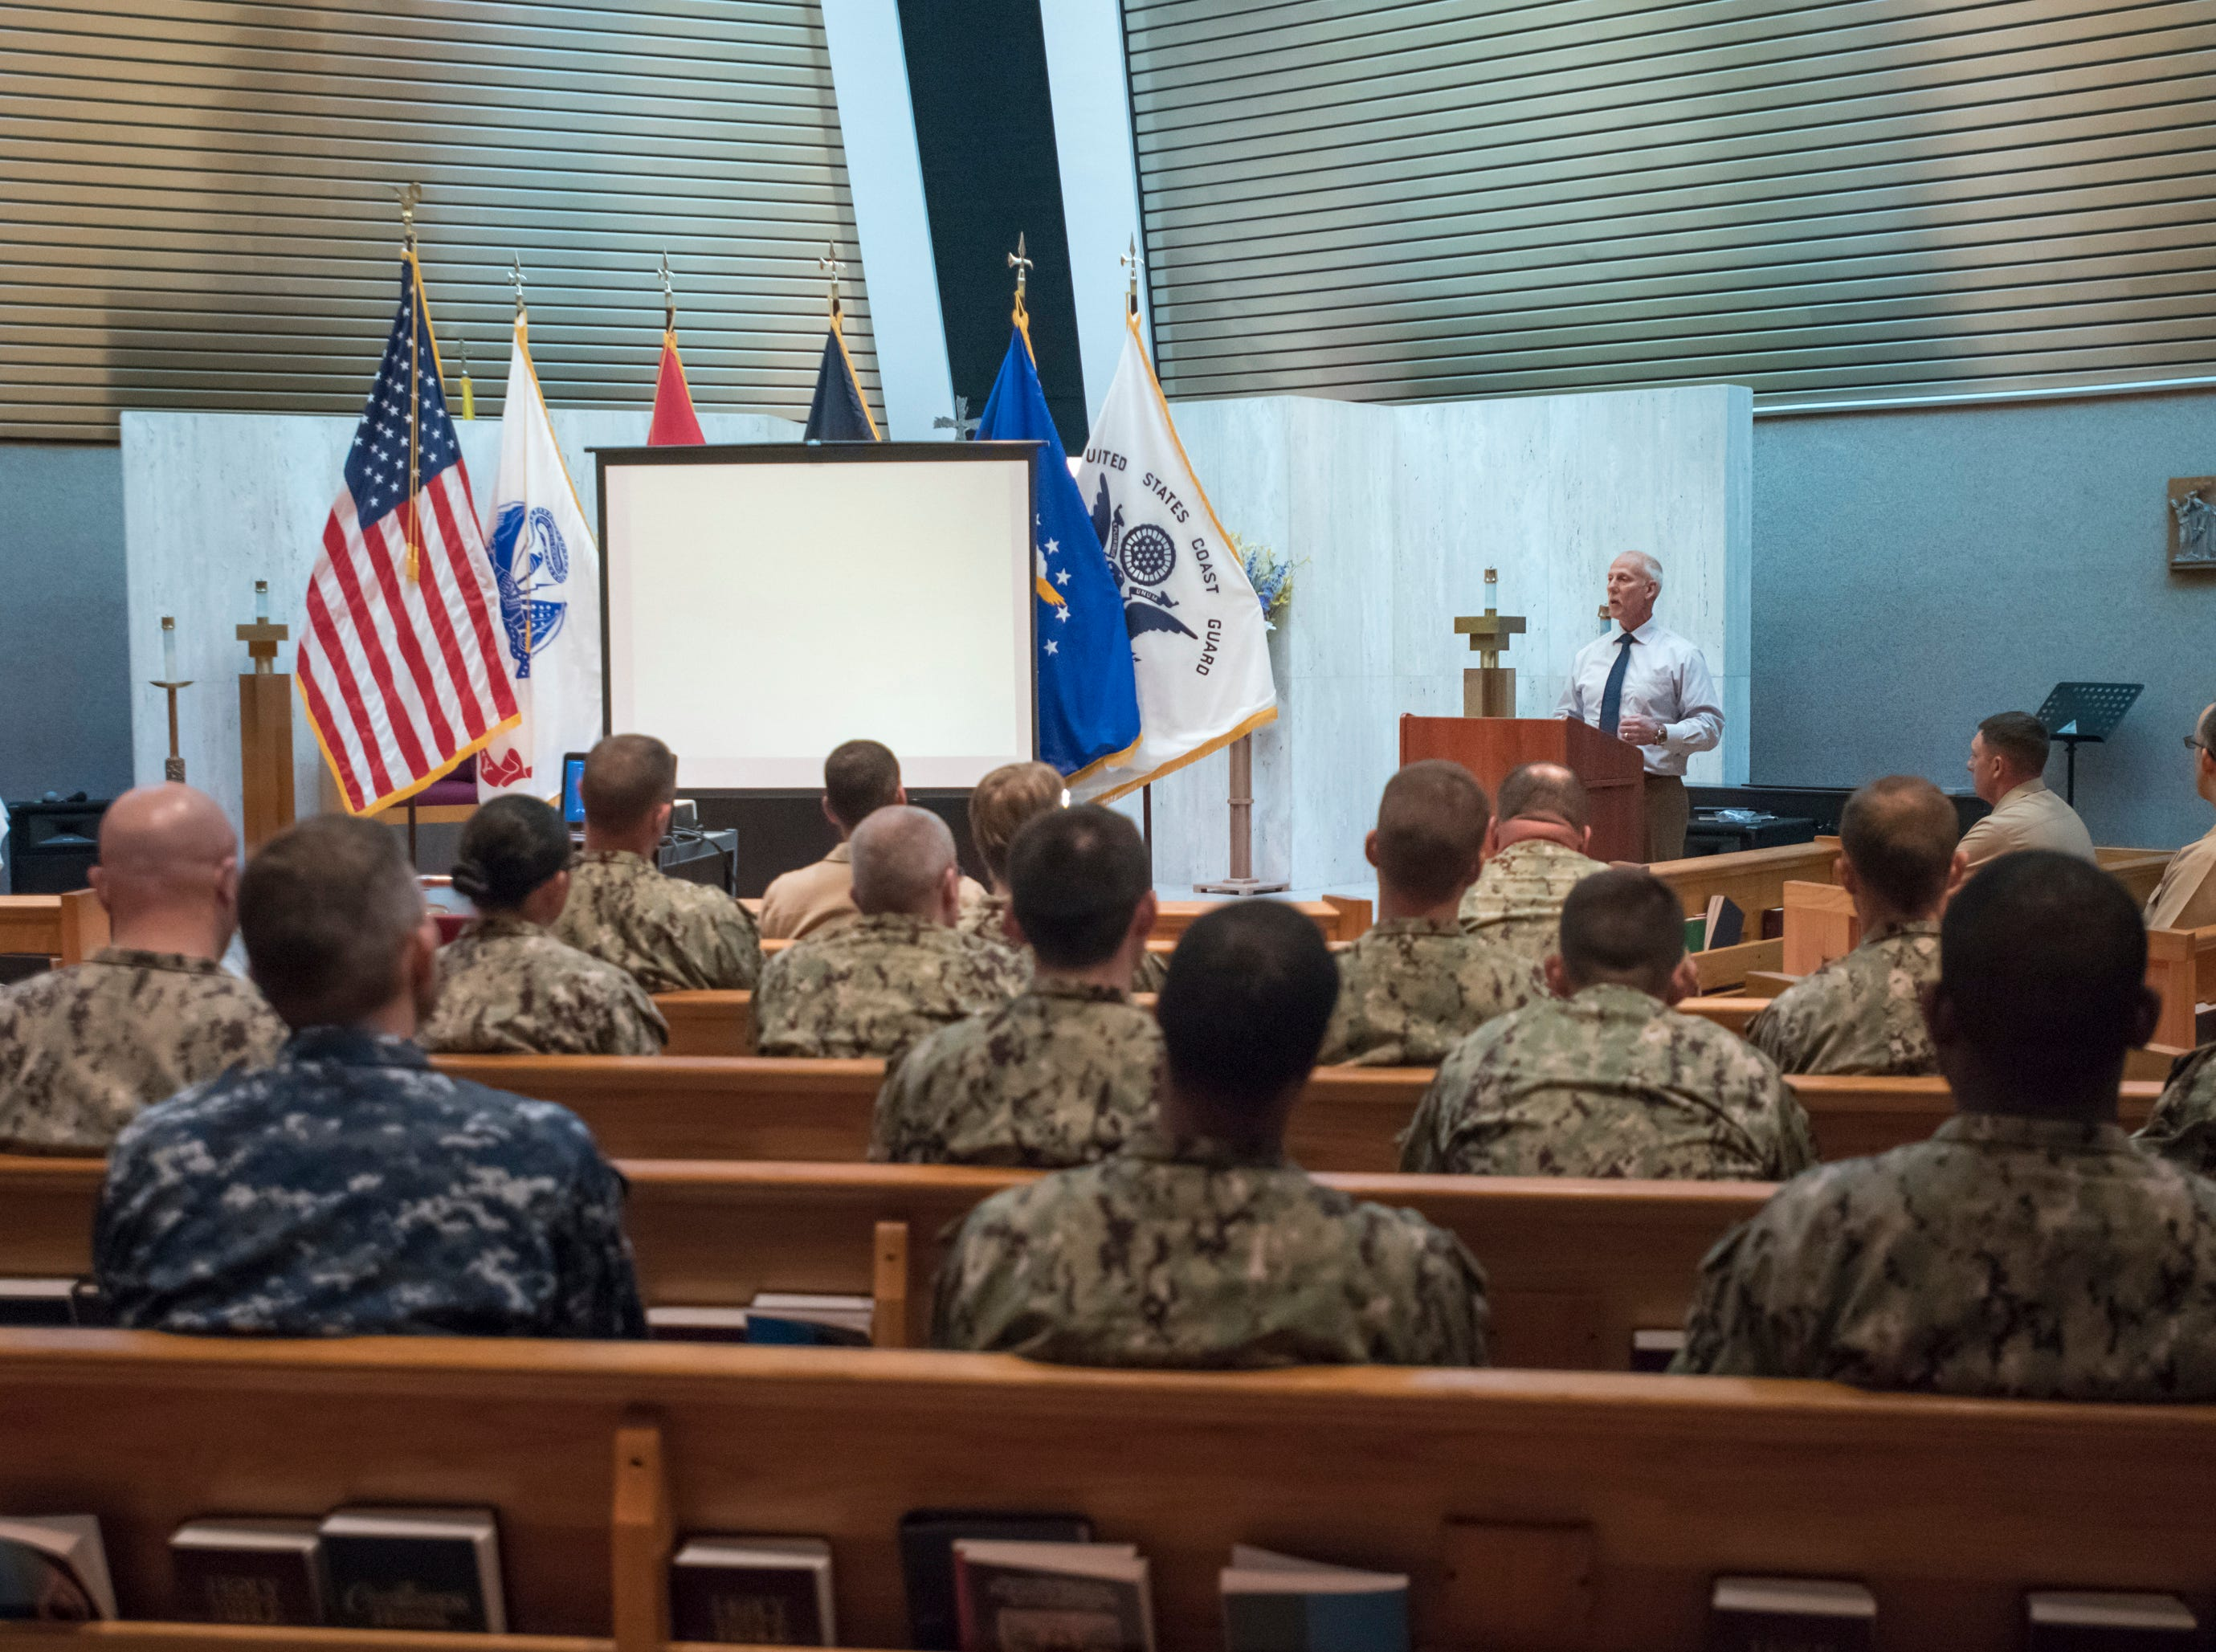 """Cryptologic warfare officer basic course instructor Mario Vulcano speaks during a memorial service for the fallen crew of the EC-121M """"Beggar Shadow"""" reconnaissance plane at Corry Station in Pensacola on Monday, April 15, 2019.  The Navy EC-121M reconnaissance aircraft (PR-21/BuNo 135749) of Fleet Air Reconnaissance Squadron One (VQ-1) was shot down over the Sea of Japan by North Korea on Monday, April 14,1969.  All 31 crewmembers were killed, including nine NAVSECGRU cryptologists."""